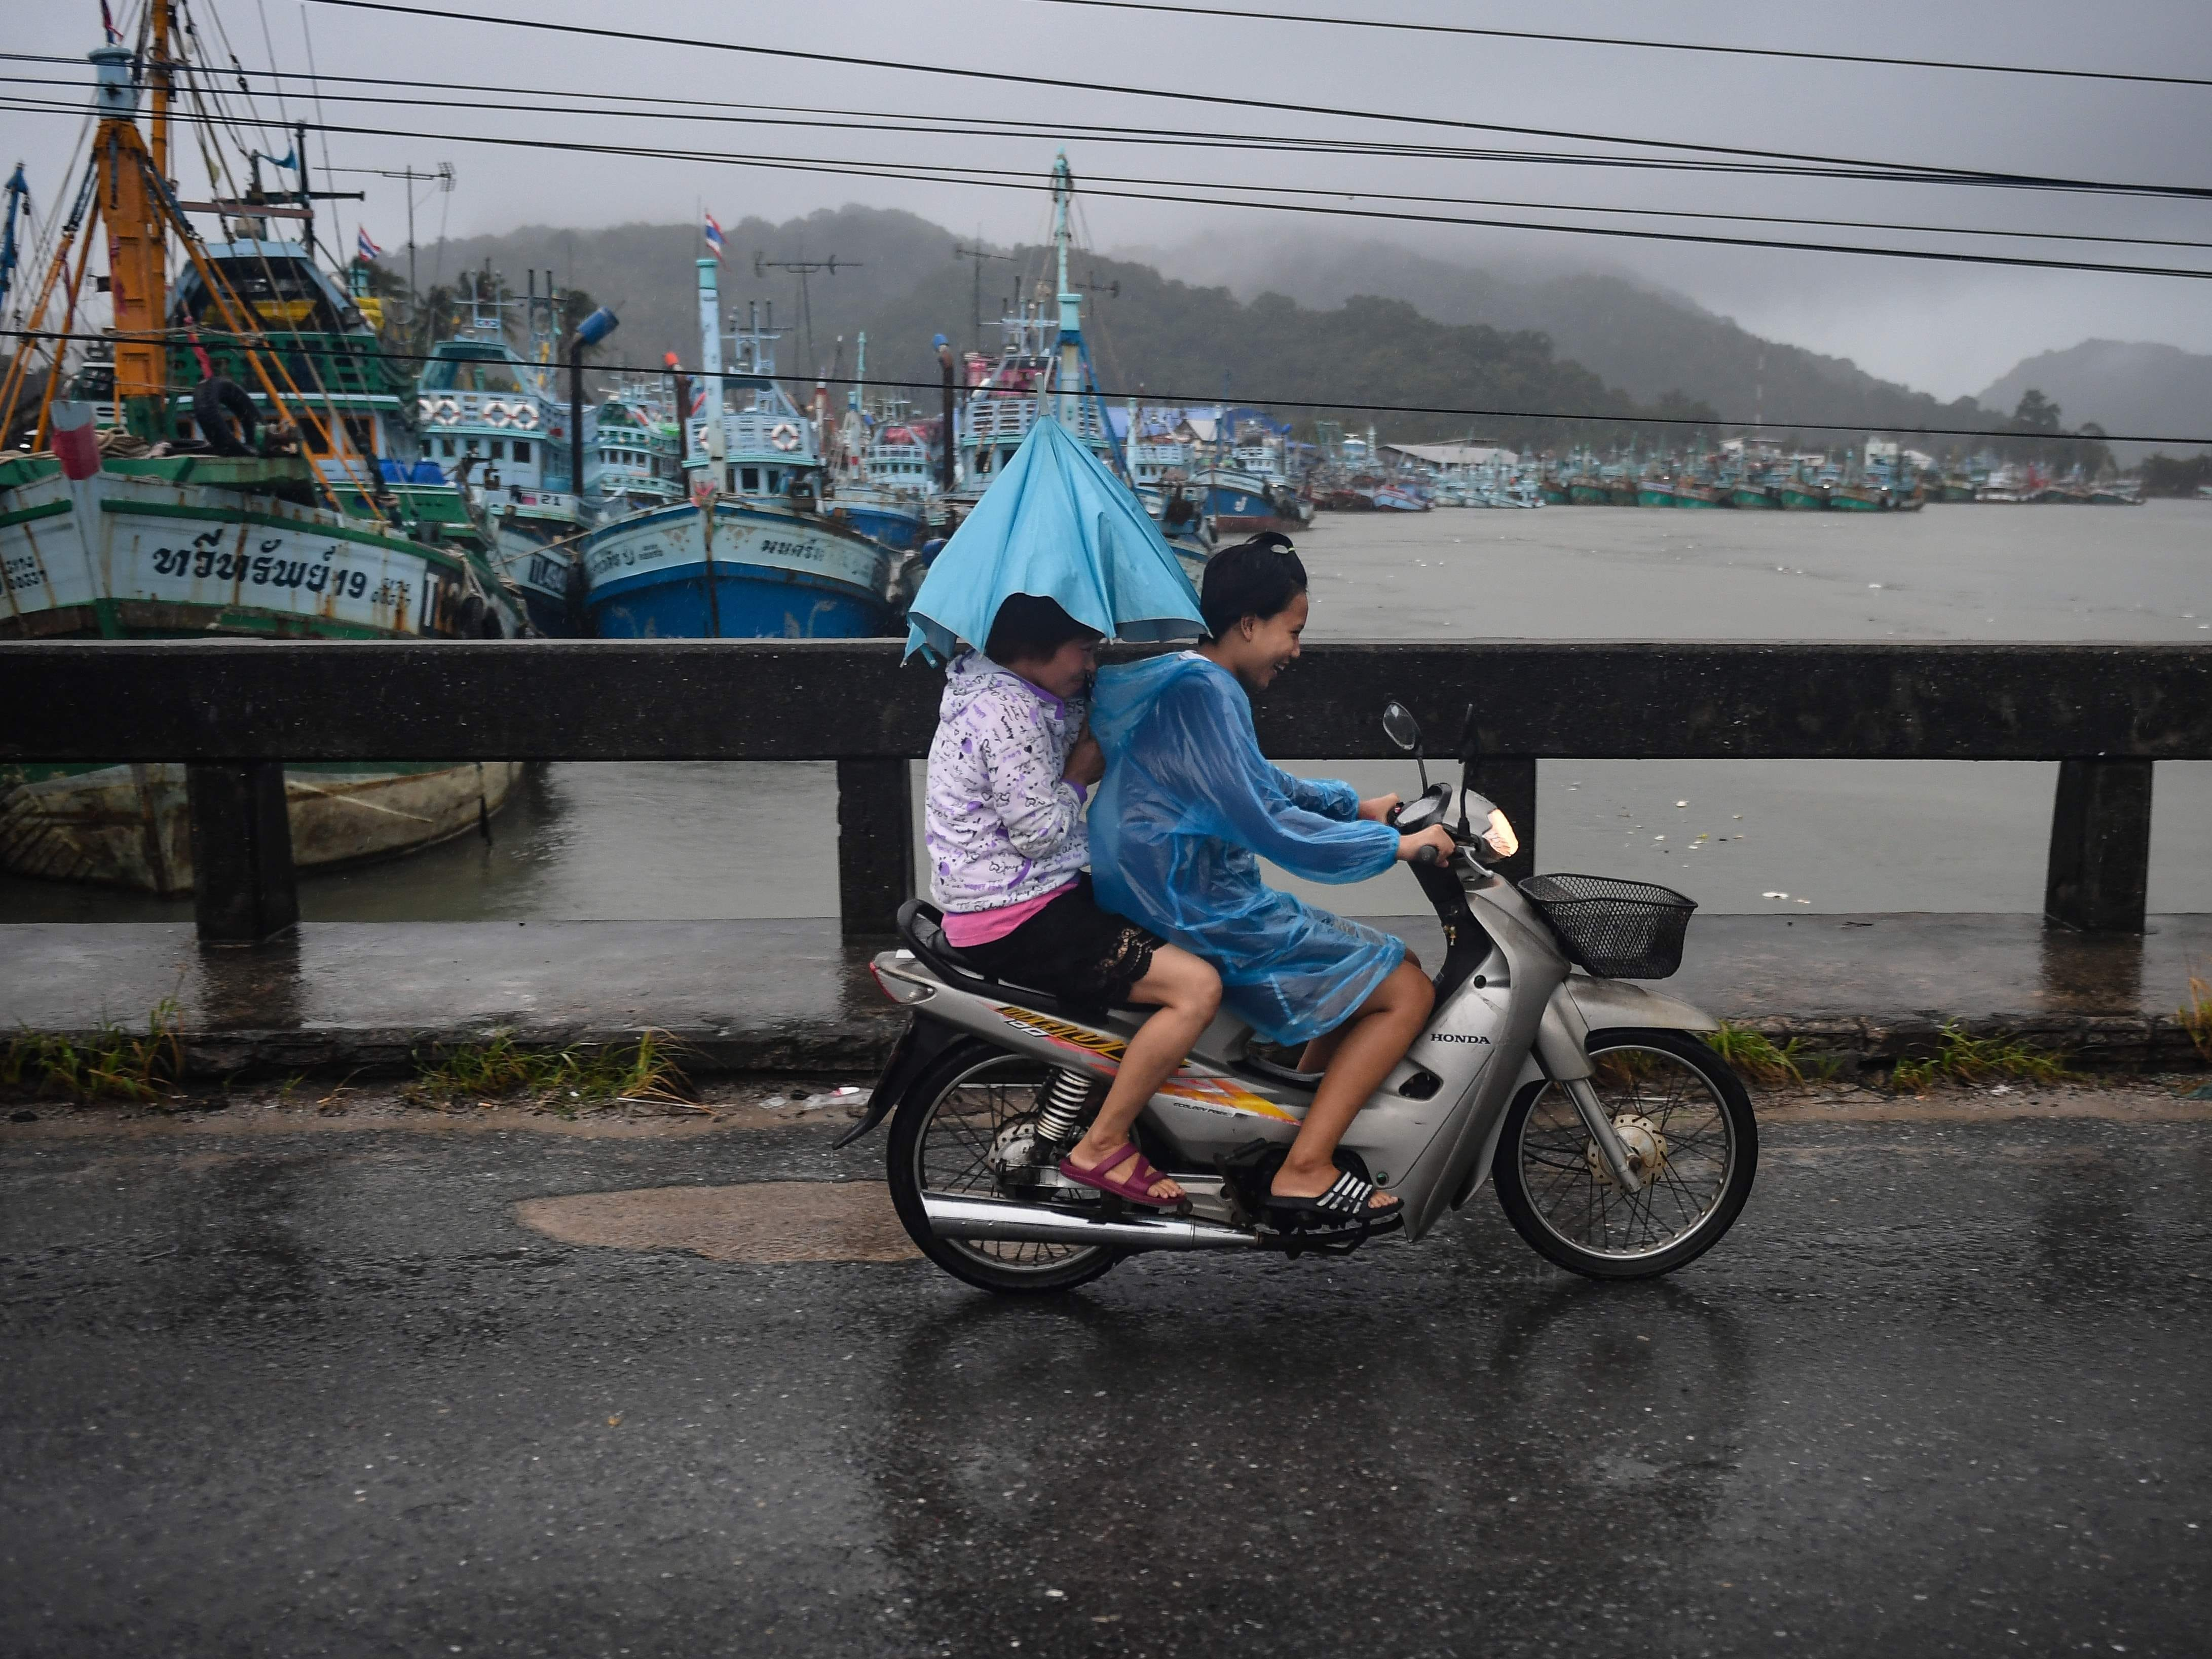 Two girls drive through heavy rain due to tropical storm Pabuk in the southern Thai province of Nakhon Si Thammarat on January 4, 2019. - Tens of thousands of tourists have fled some of Thailand's most popular islands and resort areas as Tropical Storm Pabuk closes in and threatens to batter the southern part of the kingdom with heavy rains, winds and seven-metre (22-foot) waves. (Photo by Lillian SUWANRUMPHA / AFP)LILLIAN SUWANRUMPHA/AFP/Getty Images ORIG FILE ID: AFP_1BZ0N3